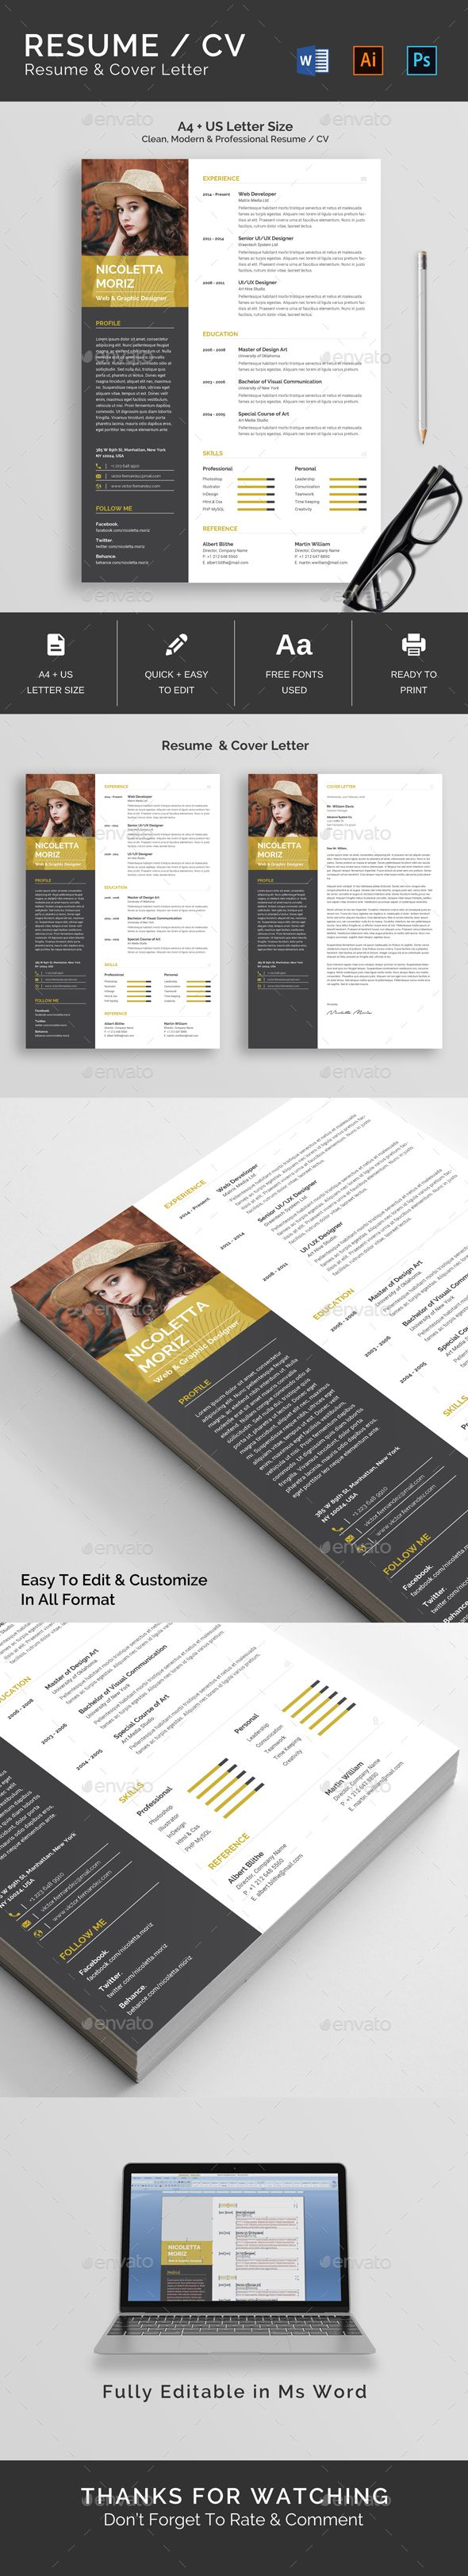 Cv Templates Design%0A Resume